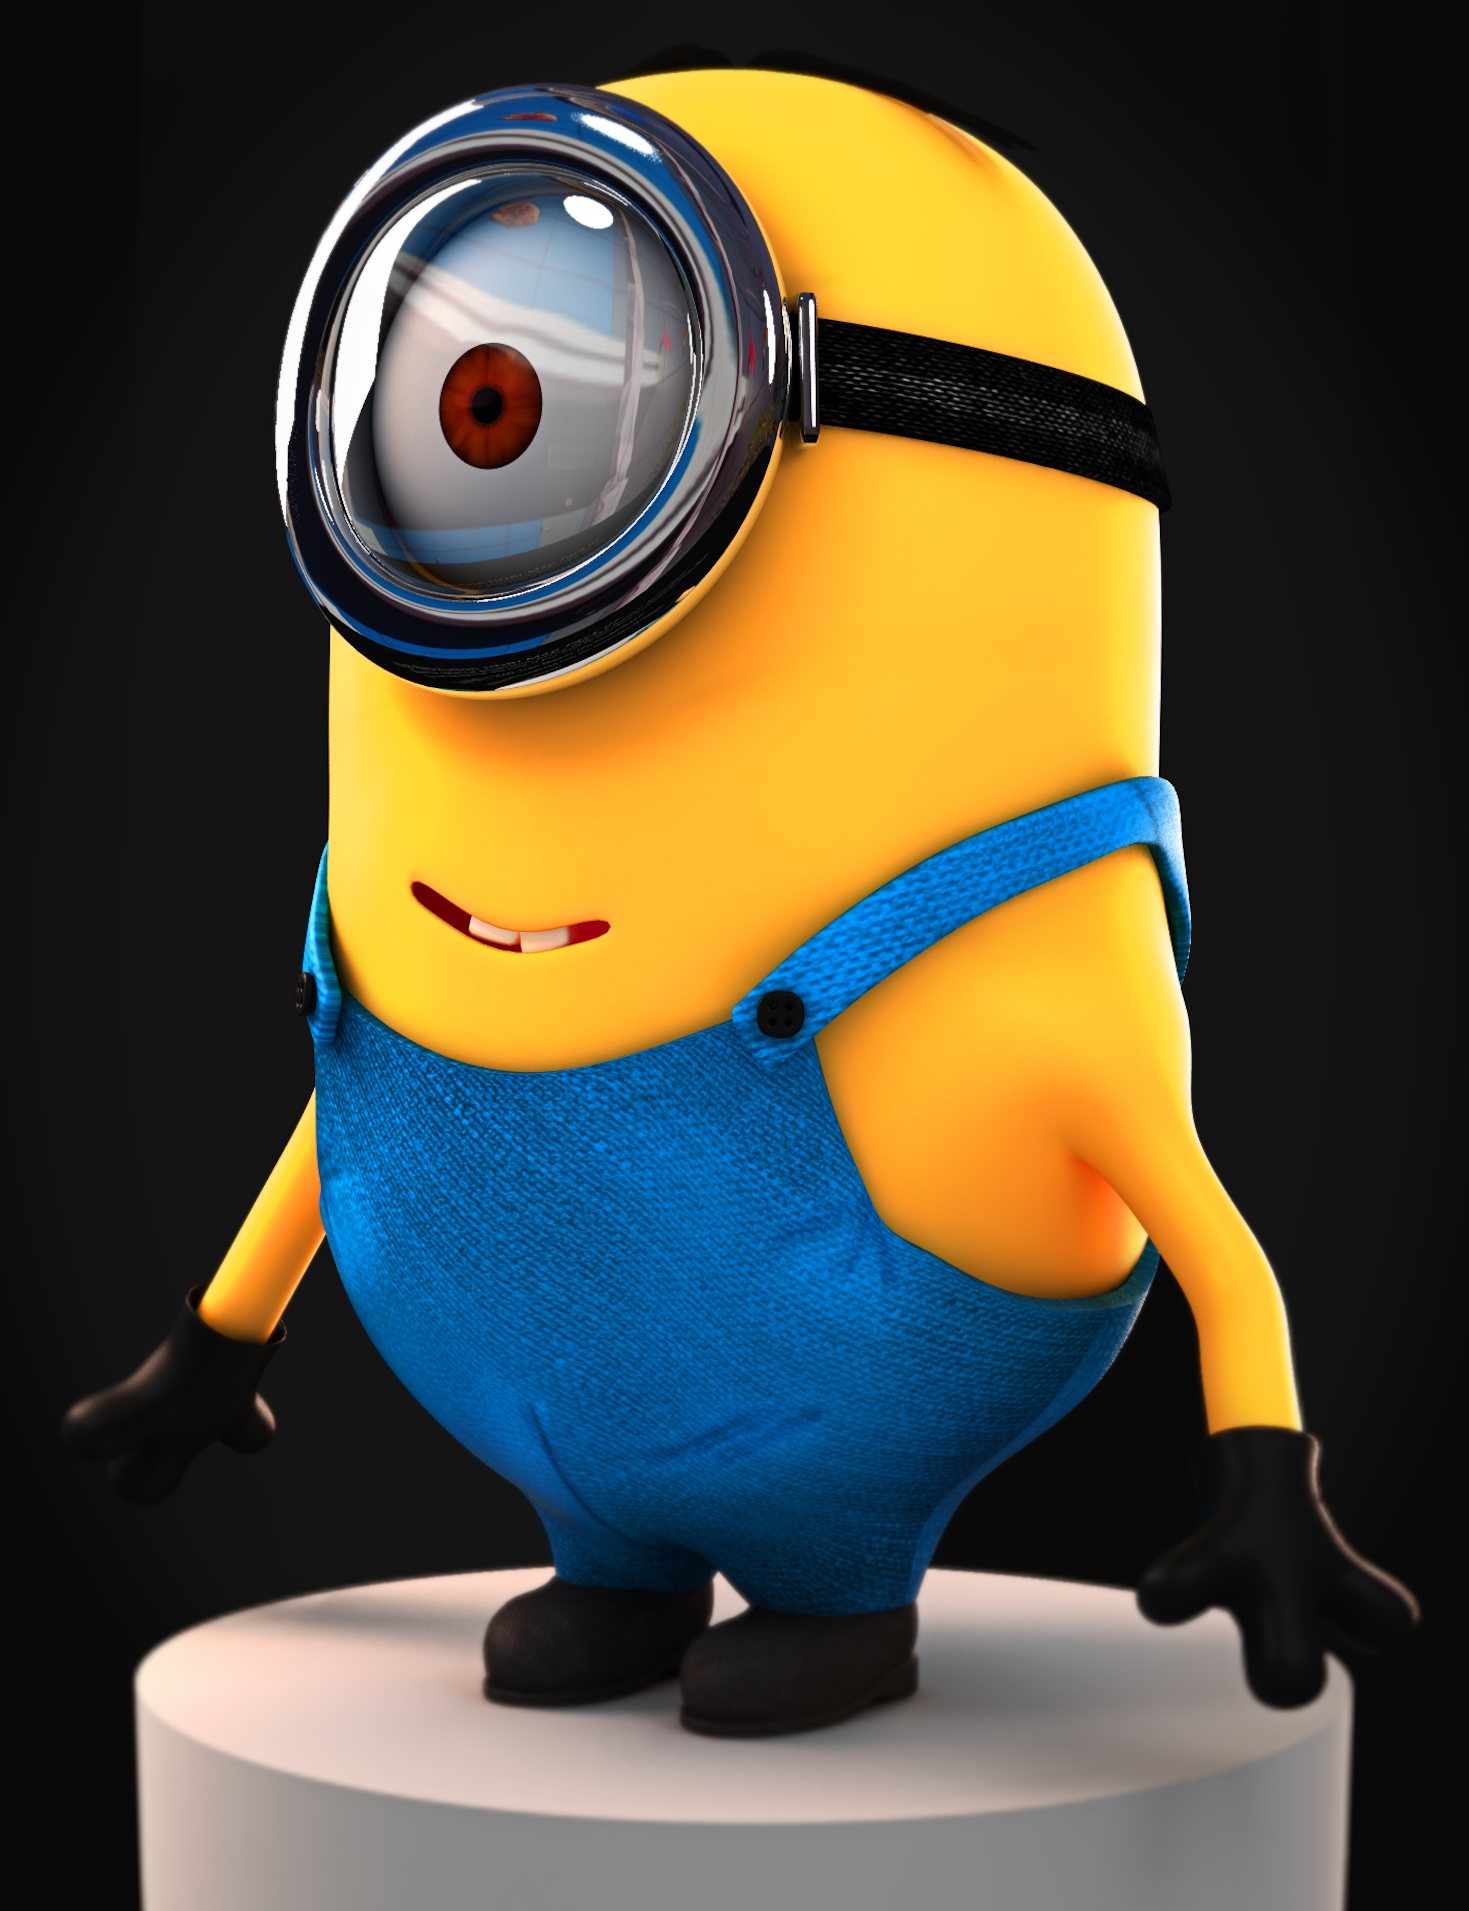 Minion Despicable Me 2010 3D By MrAnimator93 On DeviantArt